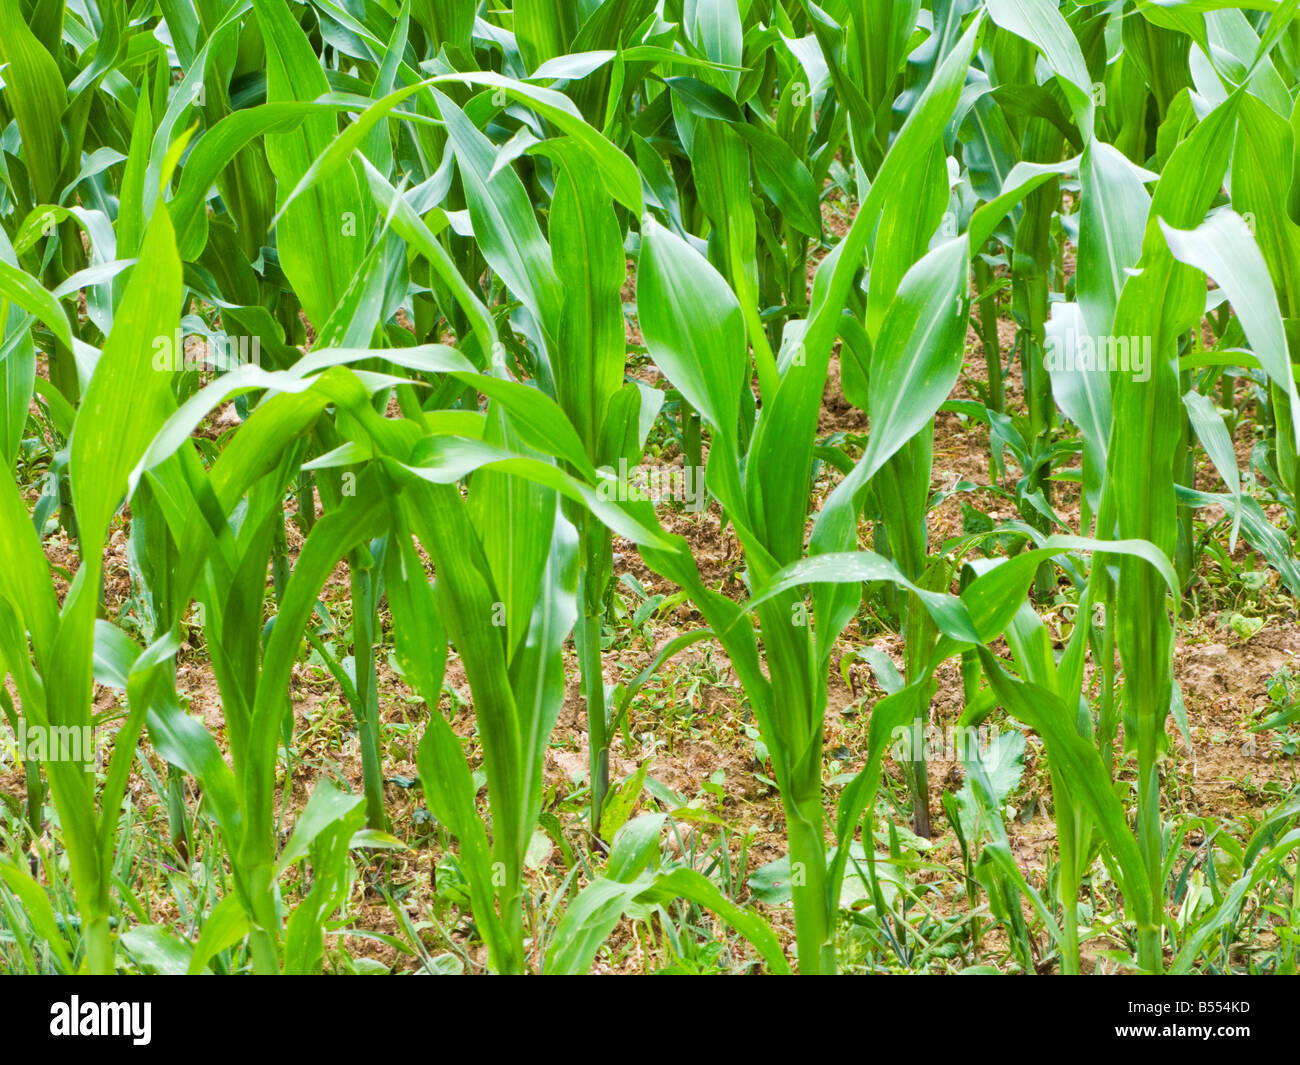 Young new Maize plants in summer growing in a field in France Europe - Stock Image